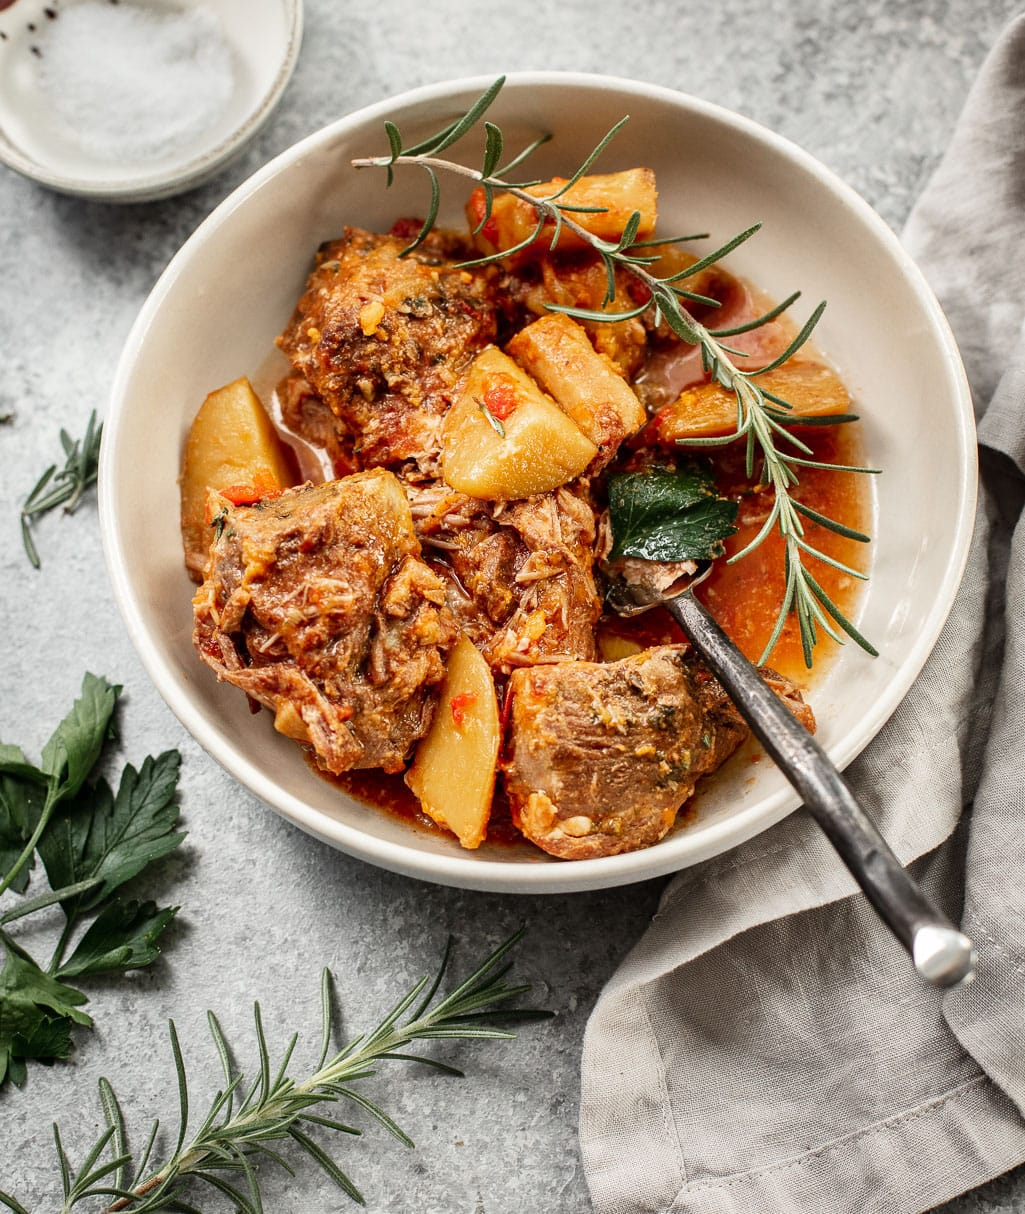 Slow-Cooker Italian Pork Shoulder with Rosemary Potatoes